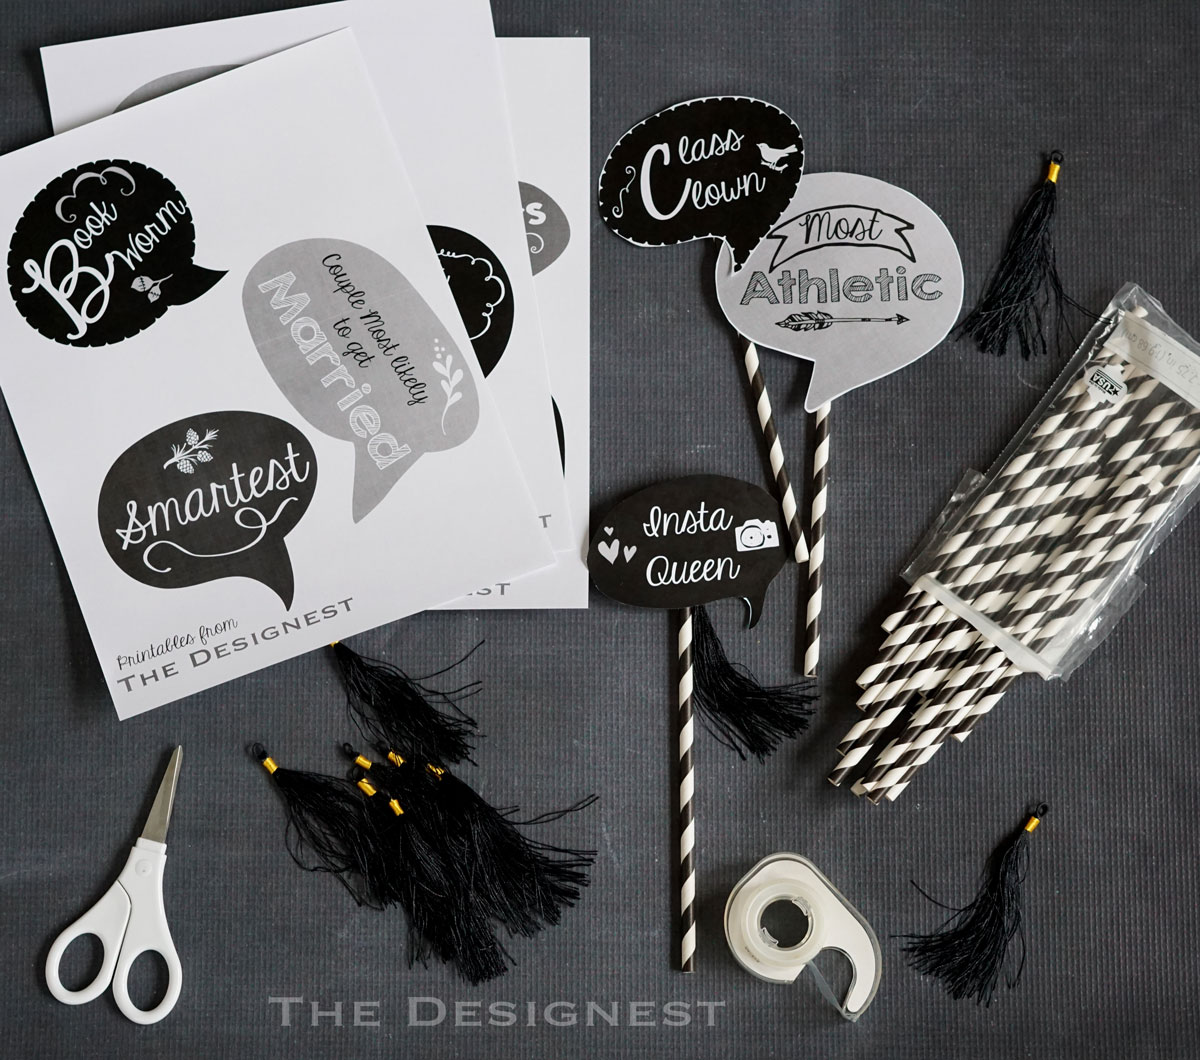 Download and print these free photo booth props that are perfect for any Graduation Party! From The Designest